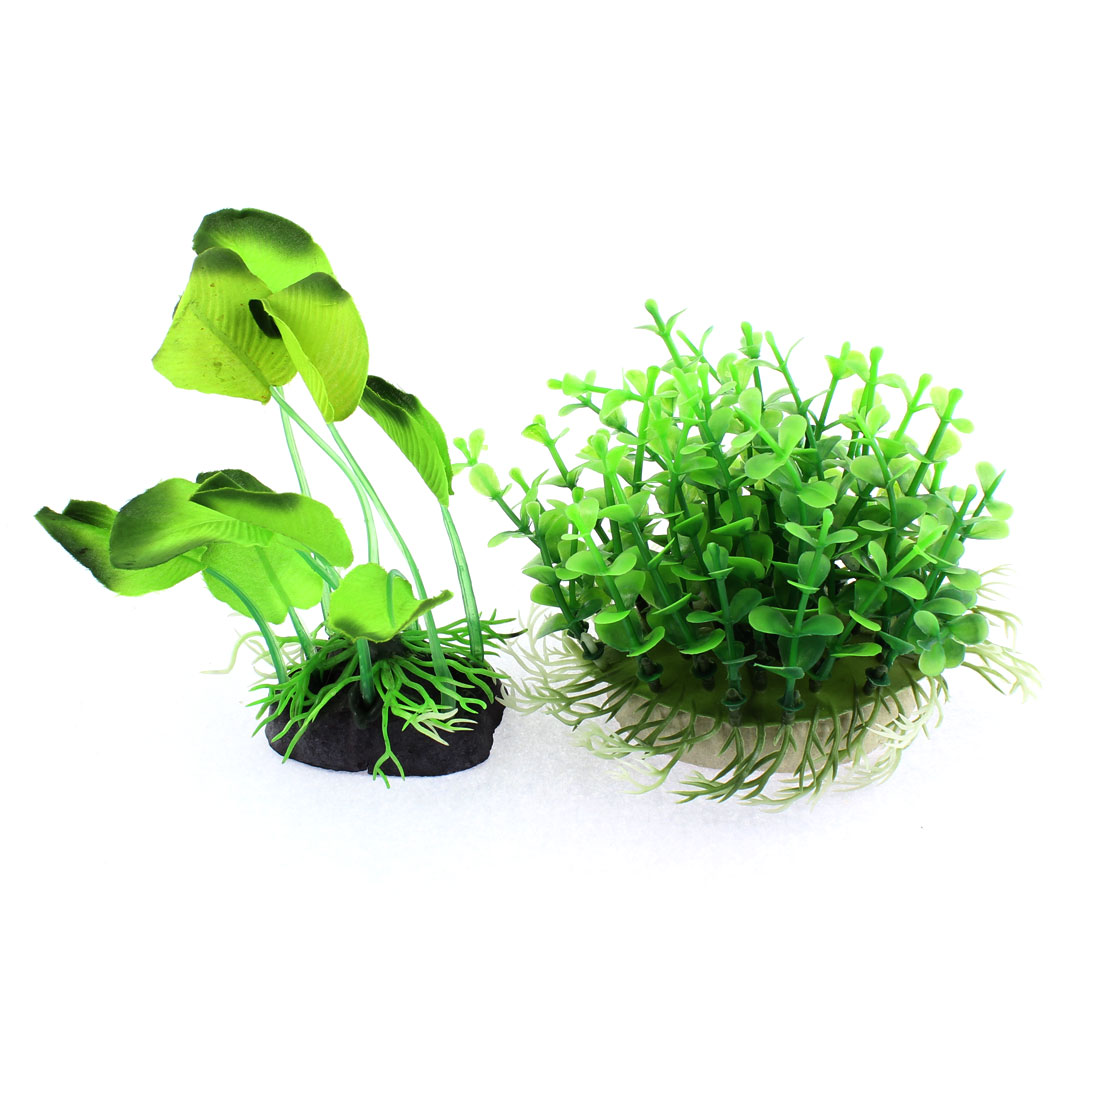 Aquarium Plastic Emulational Water Grass Plant Decor 2 in 1